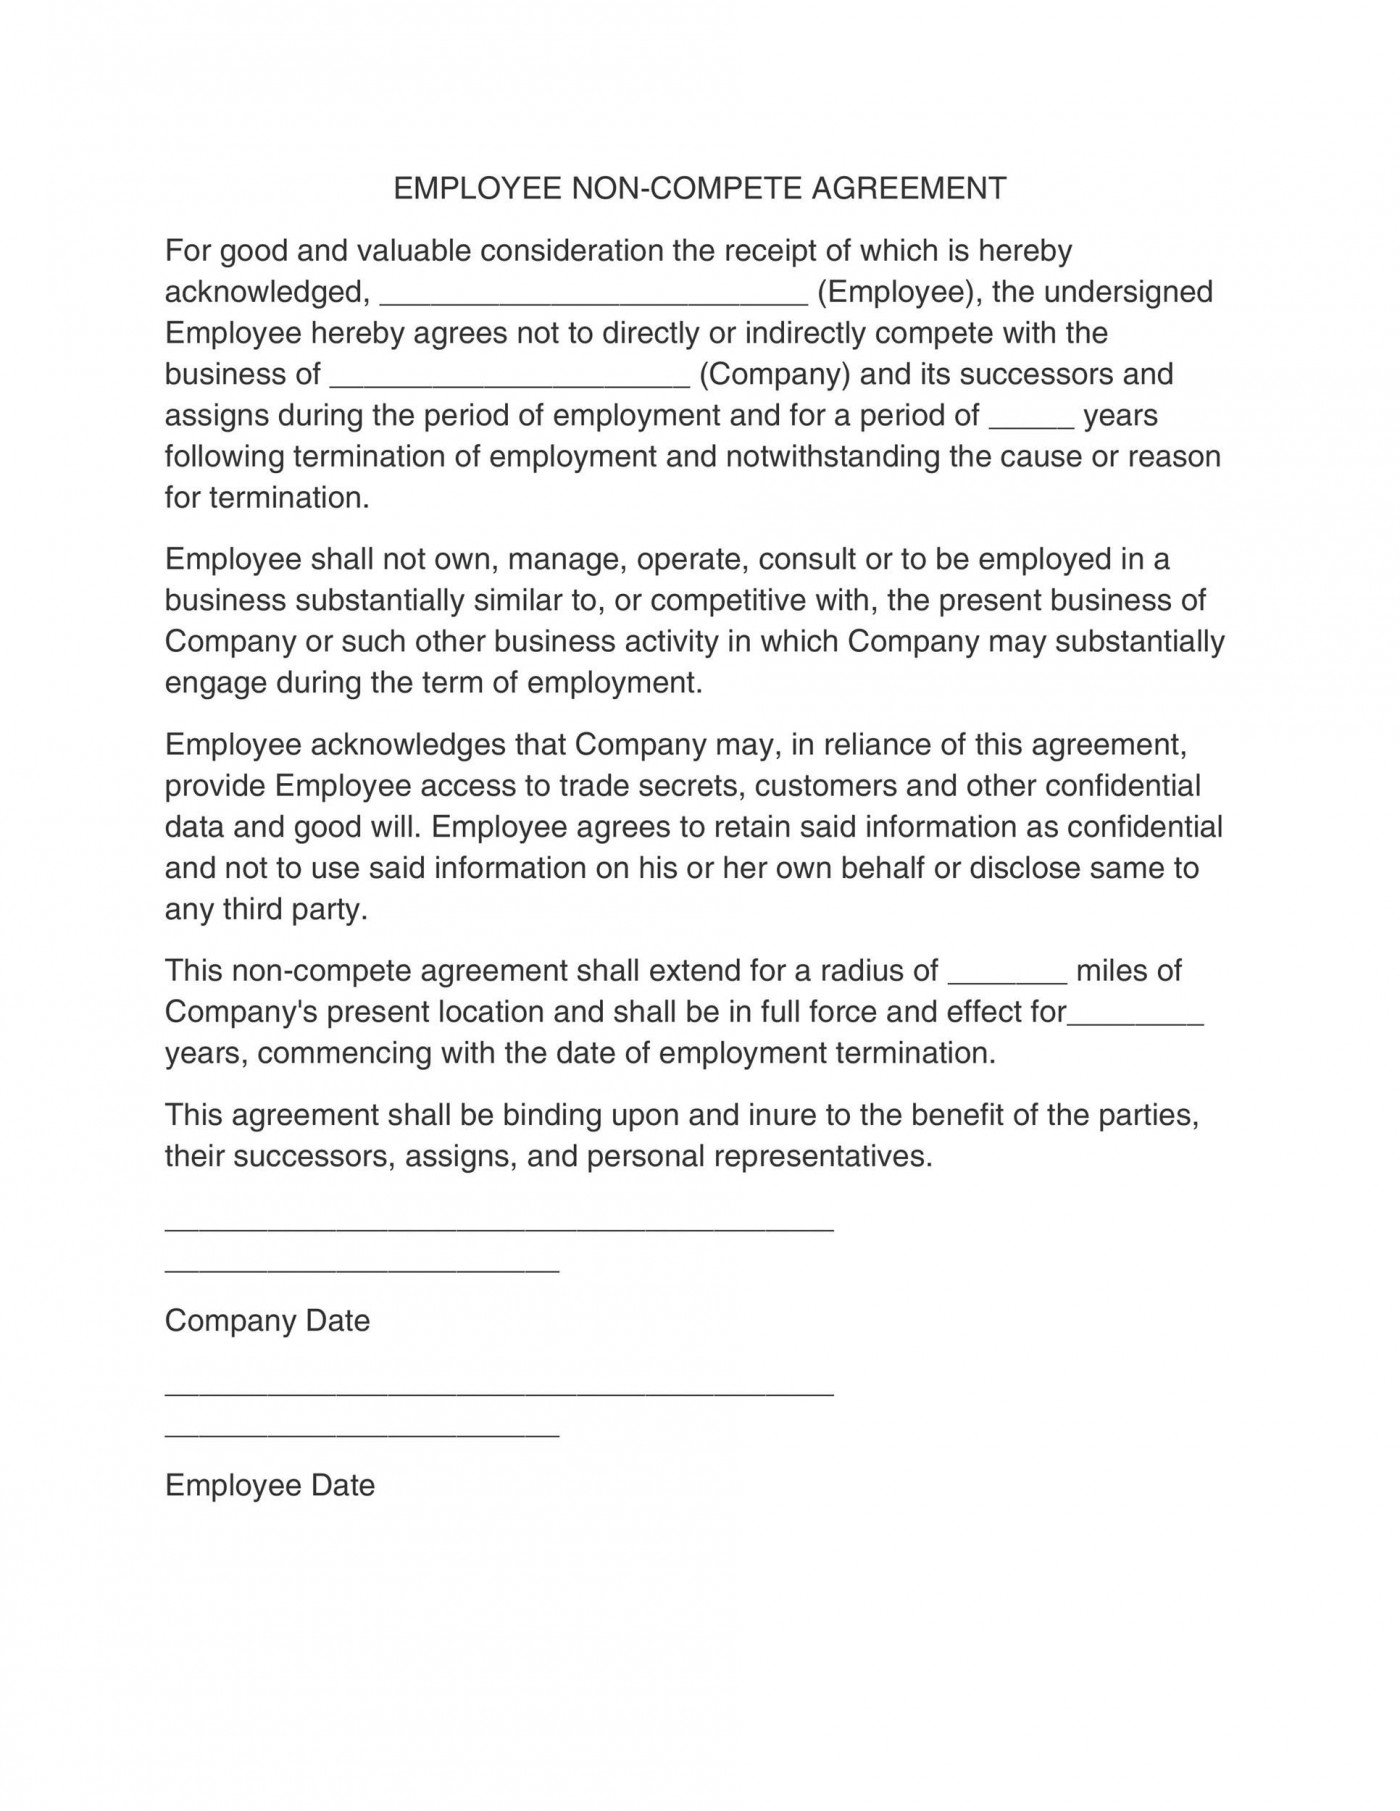 006 Unique Employee Non Compete Agreement Template Photo  Free Confidentiality Non-compete Disclosure1400